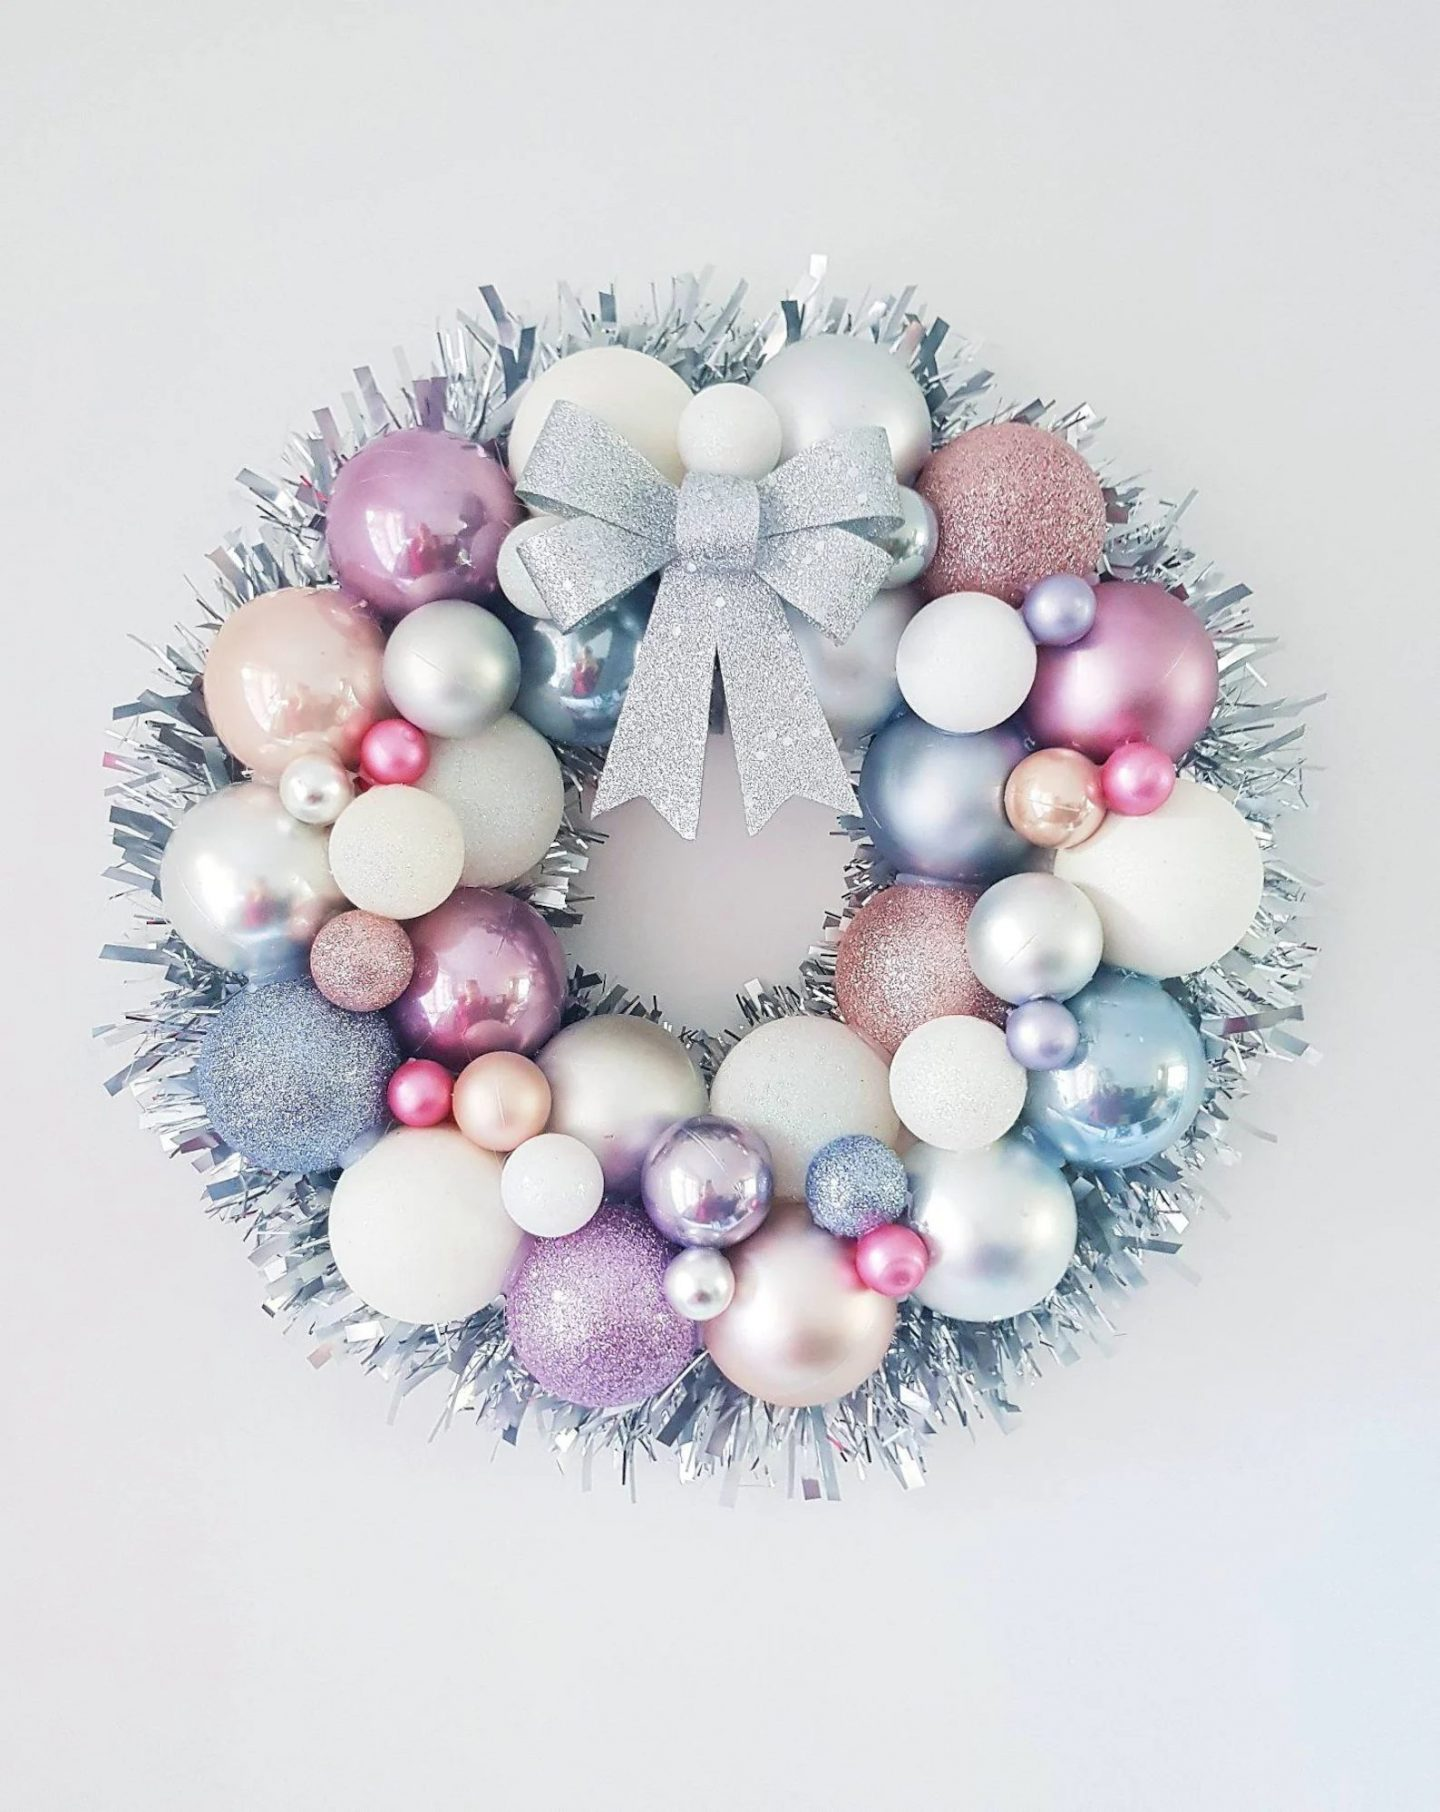 Elegant white and silver bauble wreath for the holidays